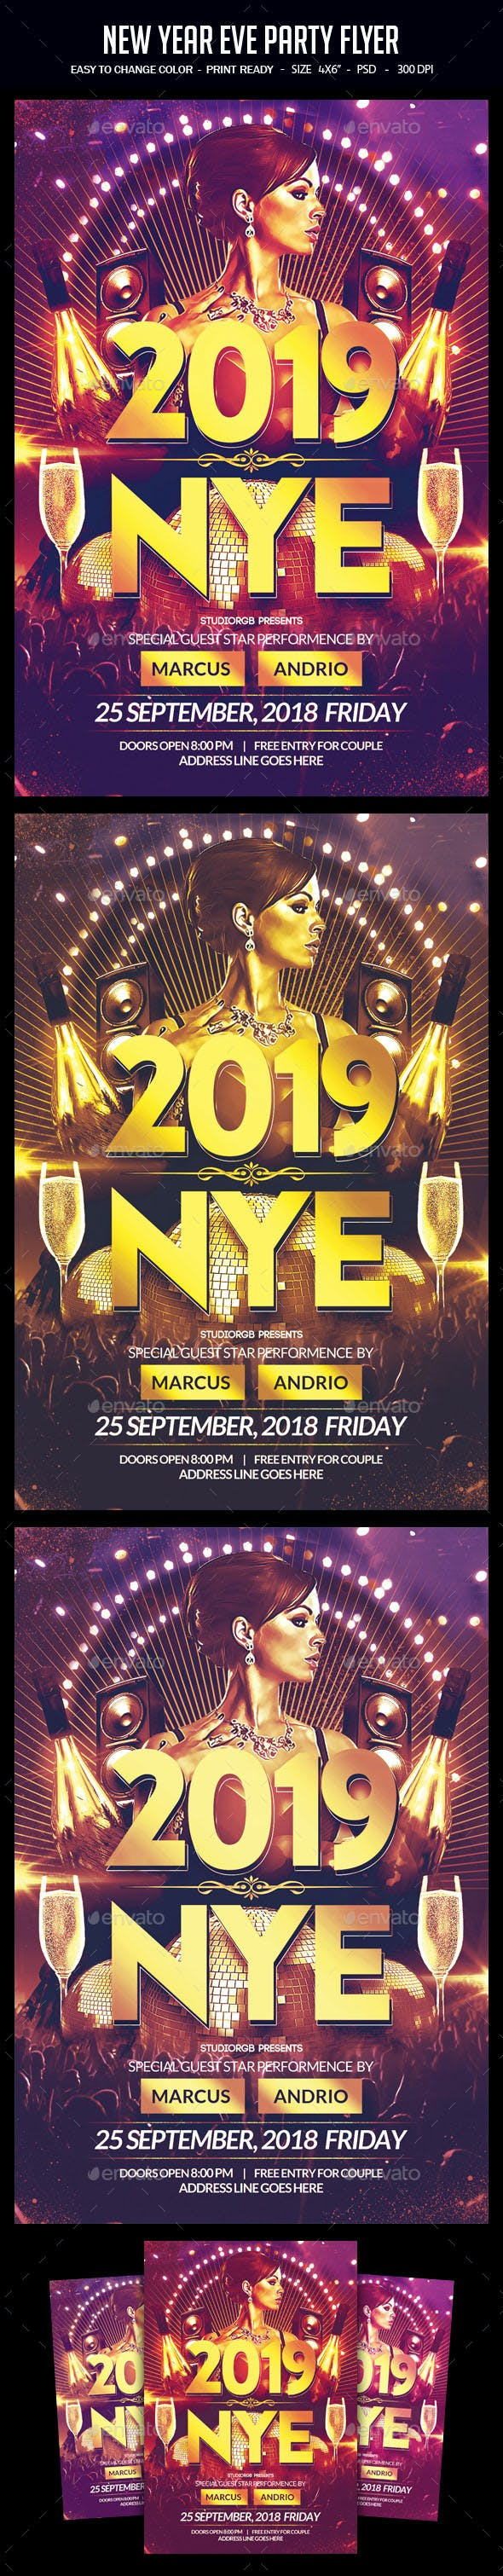 new year eve party flyer by studiorgb graphicriver